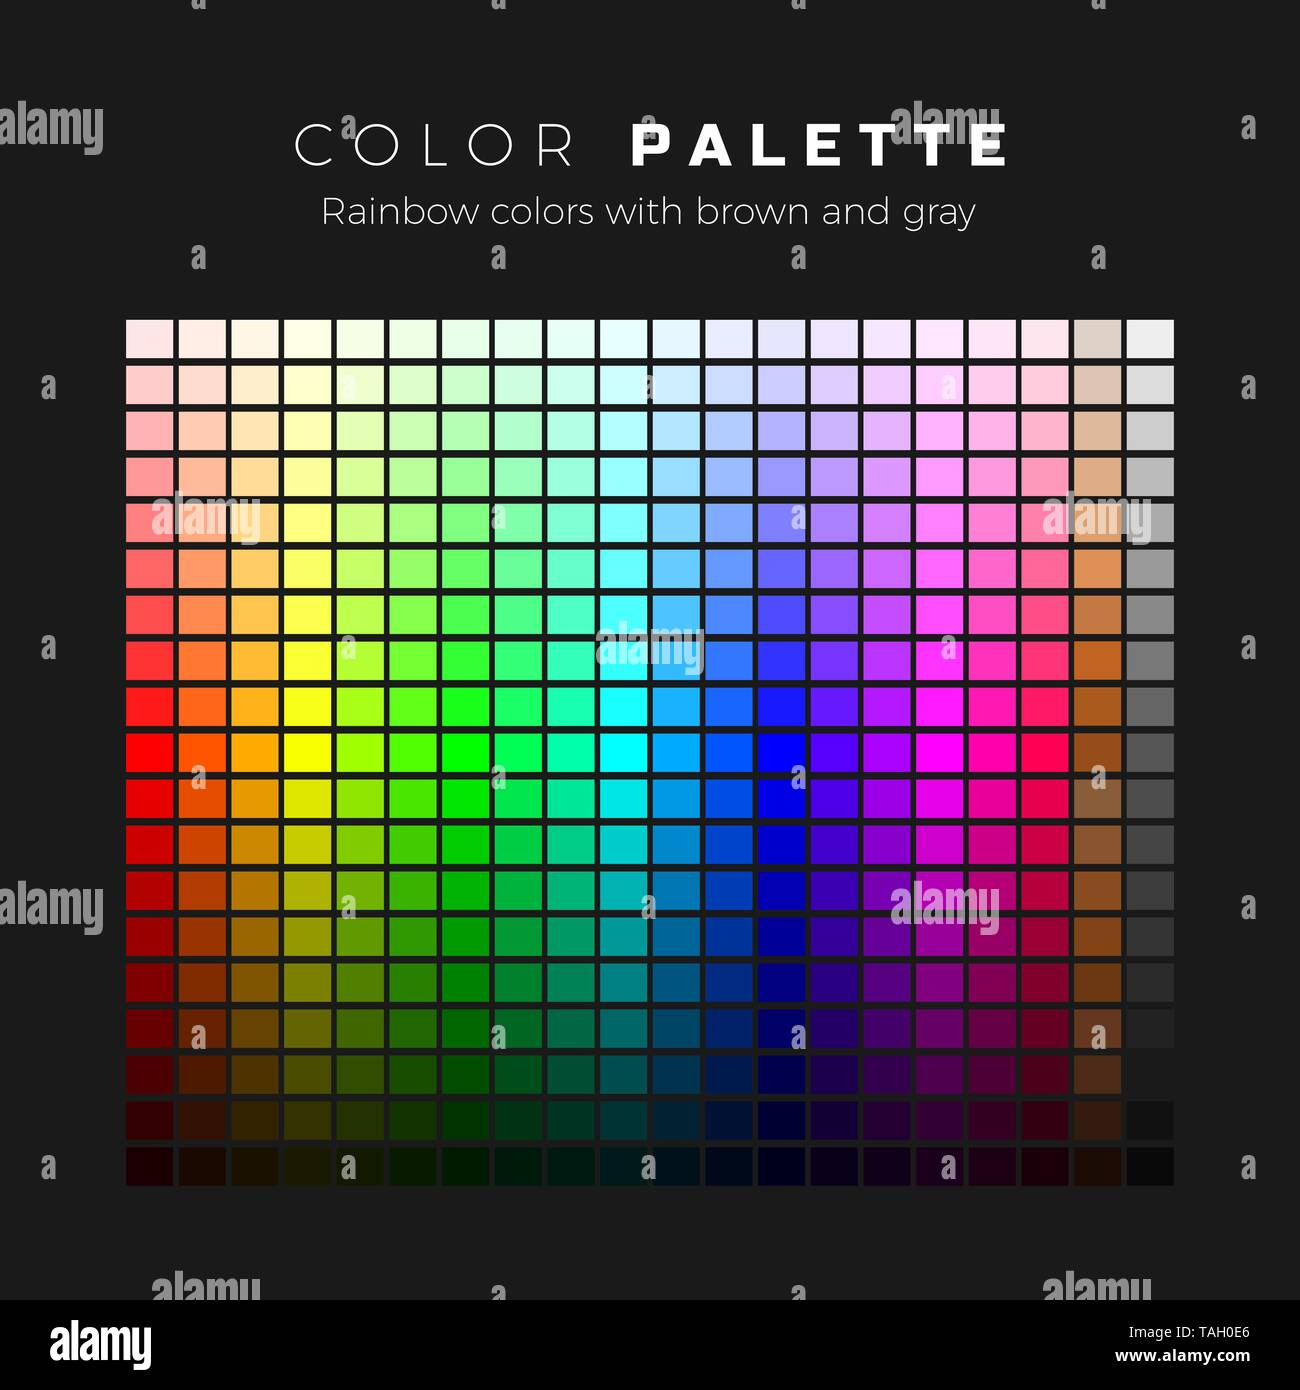 Colorful Palette Full Spectrum Of Colors With Brown And Gray Shades Set Of Bright Colors Of Rainbow Palette Vector Illustration Stock Vector Image Art Alamy